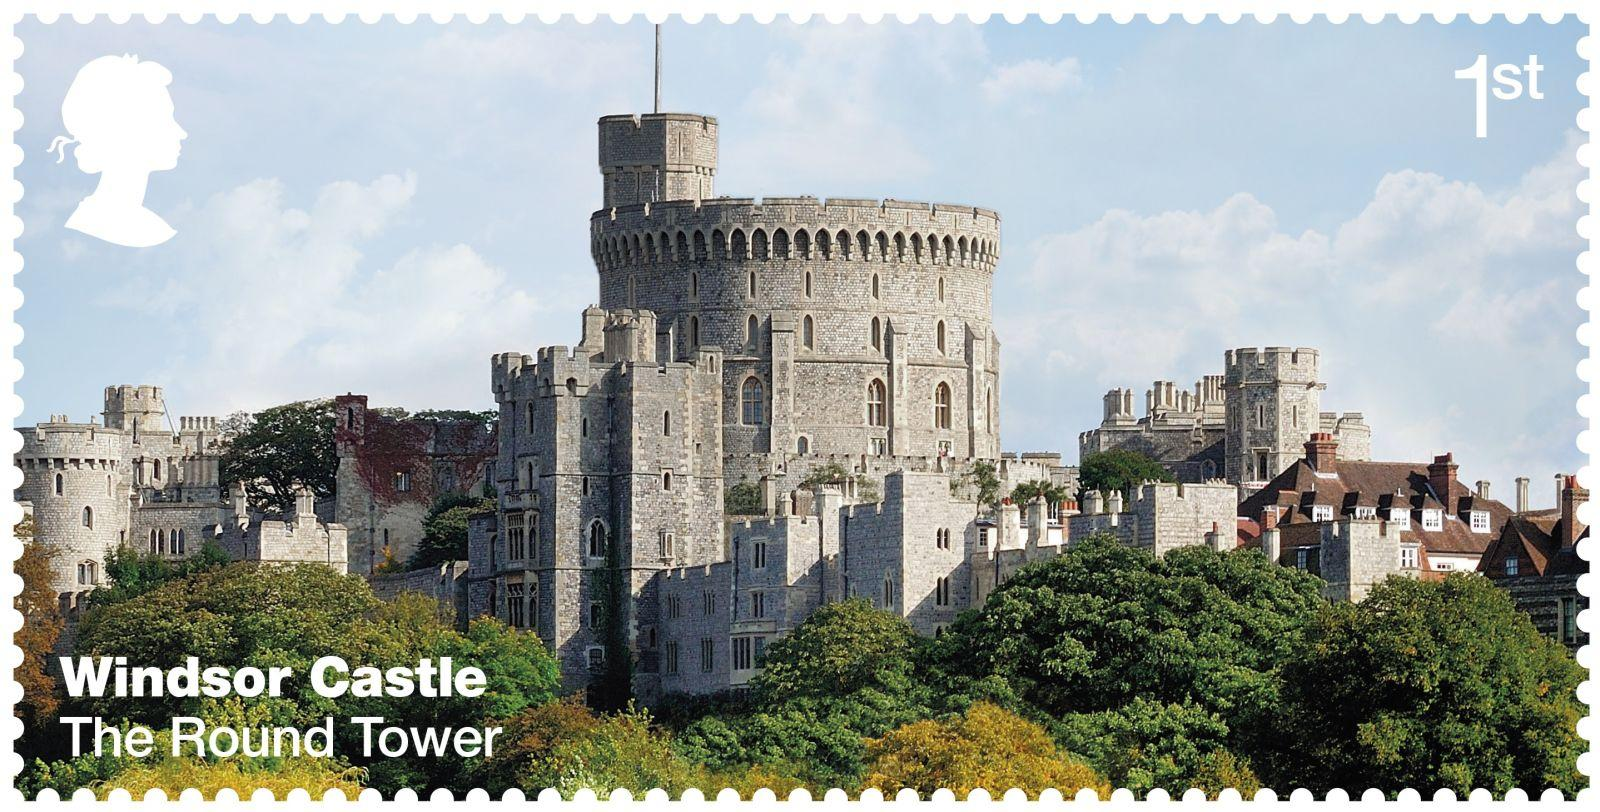 Windsor_Castle_on_Royal_Mail_stamps03